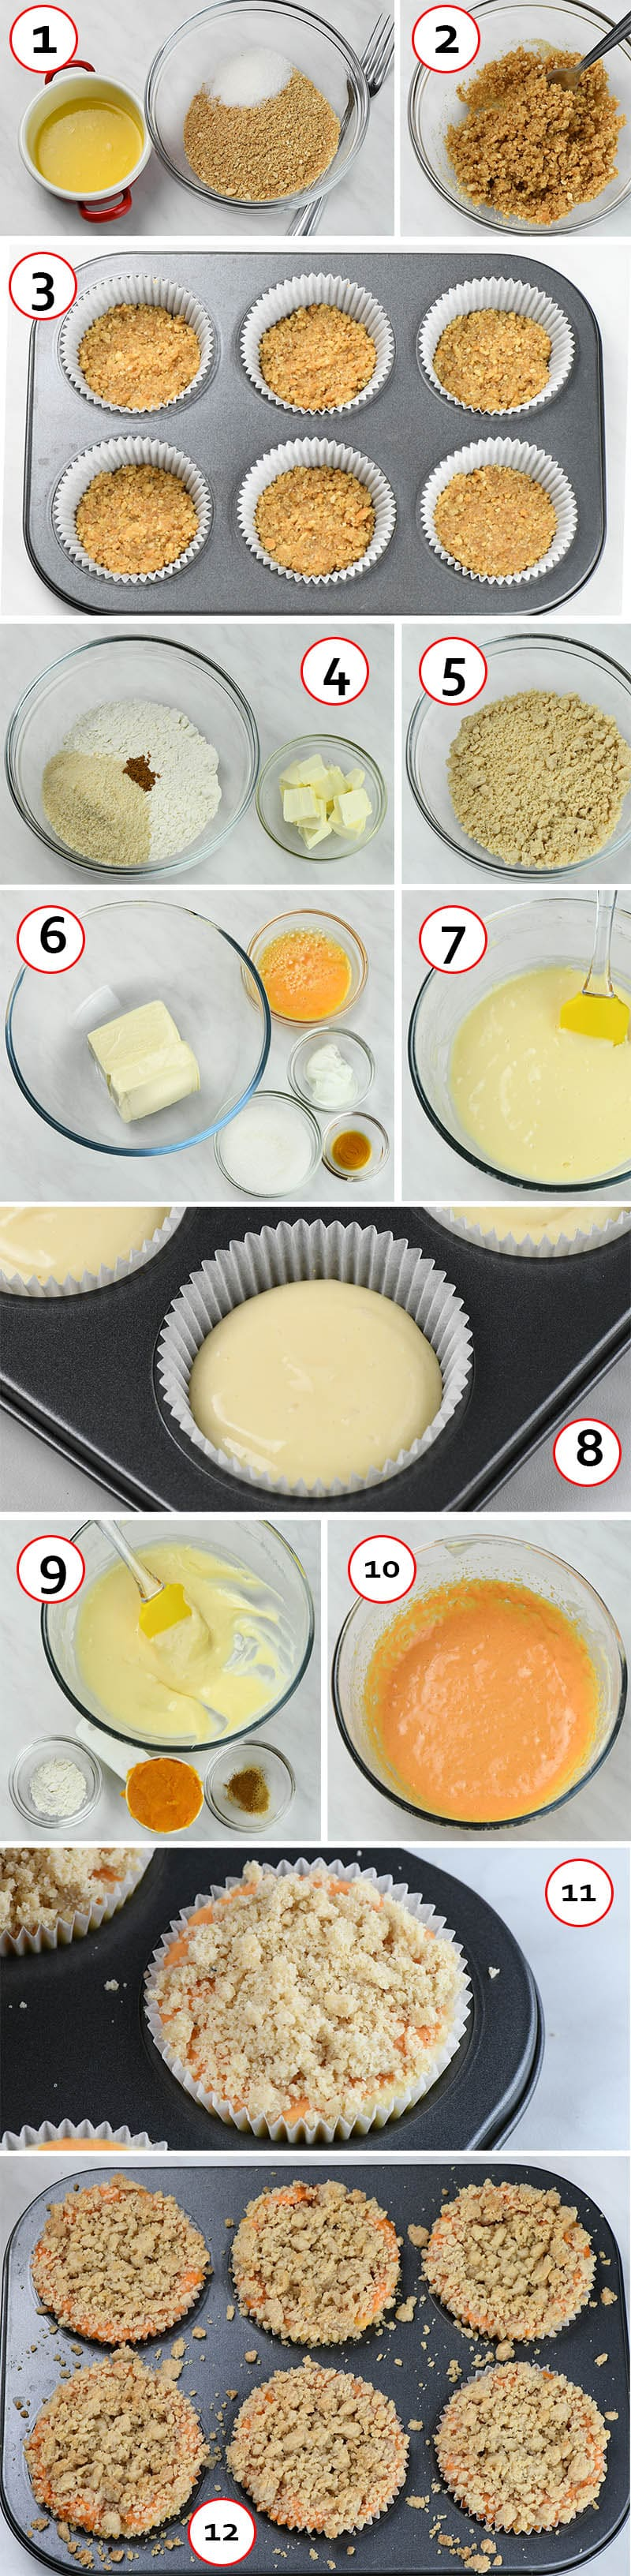 Step-by-step instruction for preparing Mini Pumpkin Cheesecakes